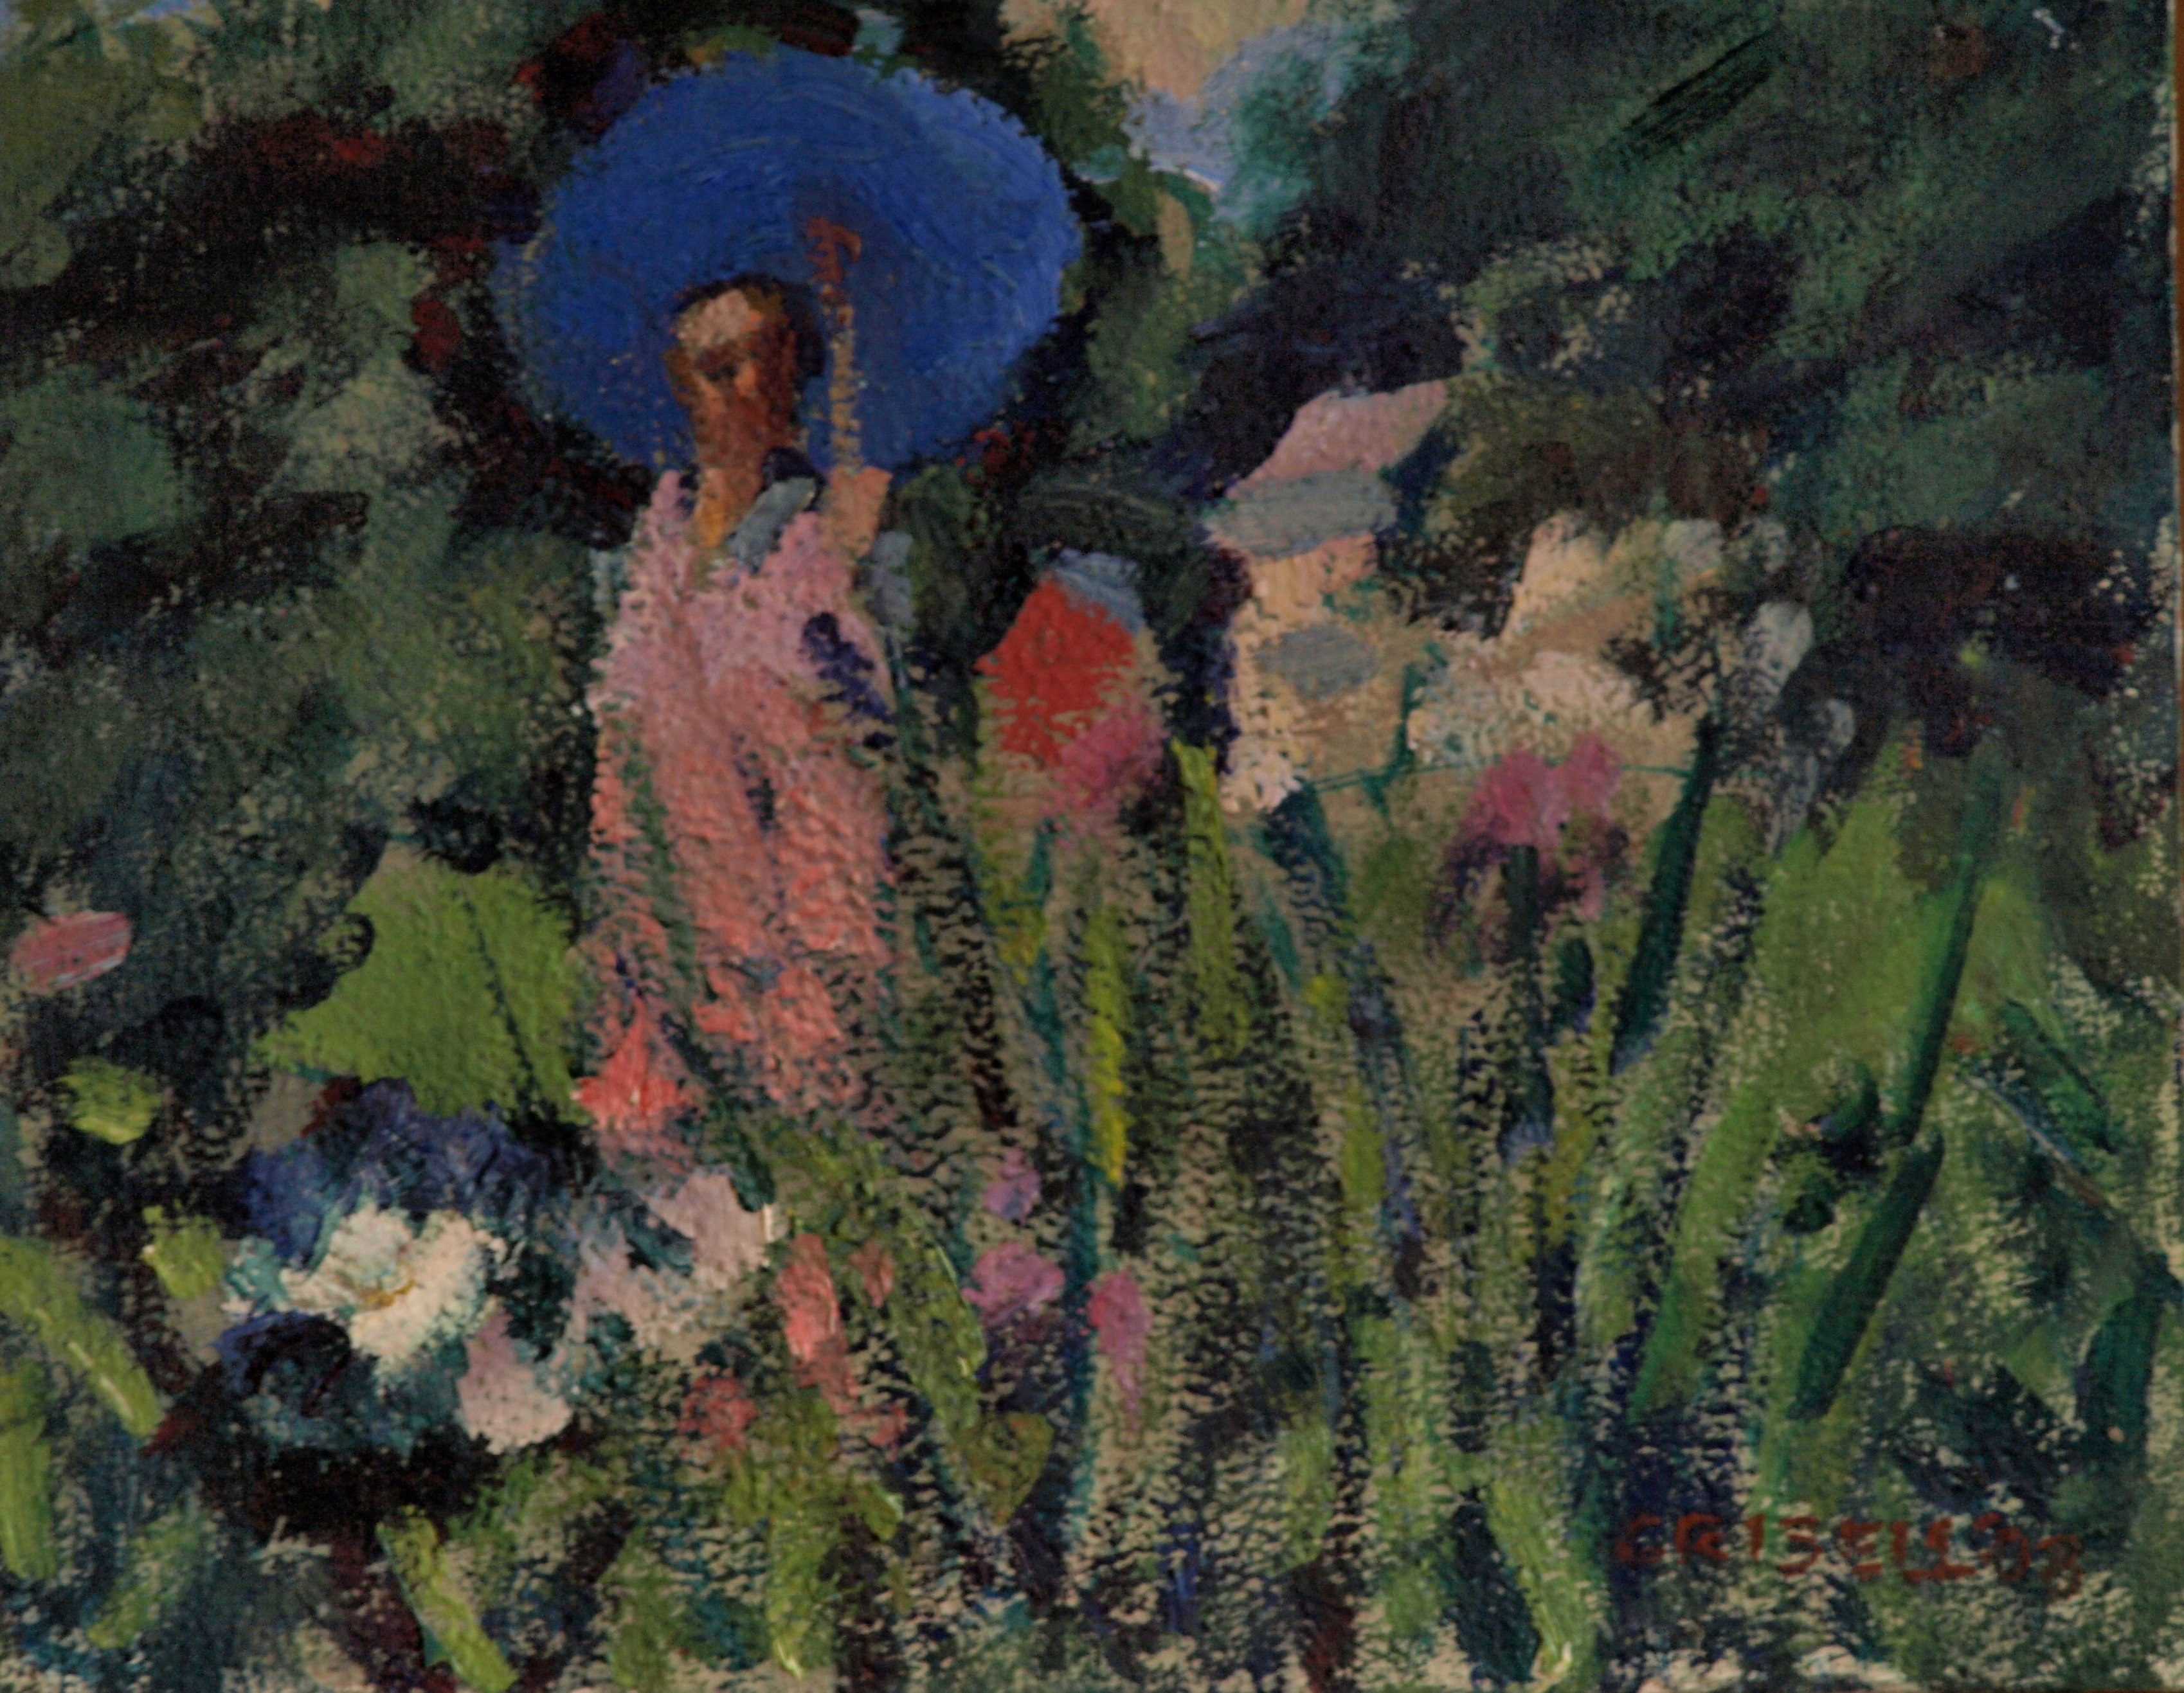 Garden in June, Oil on Panel, 8 x 10 Inches, by Susan Grisell, $150